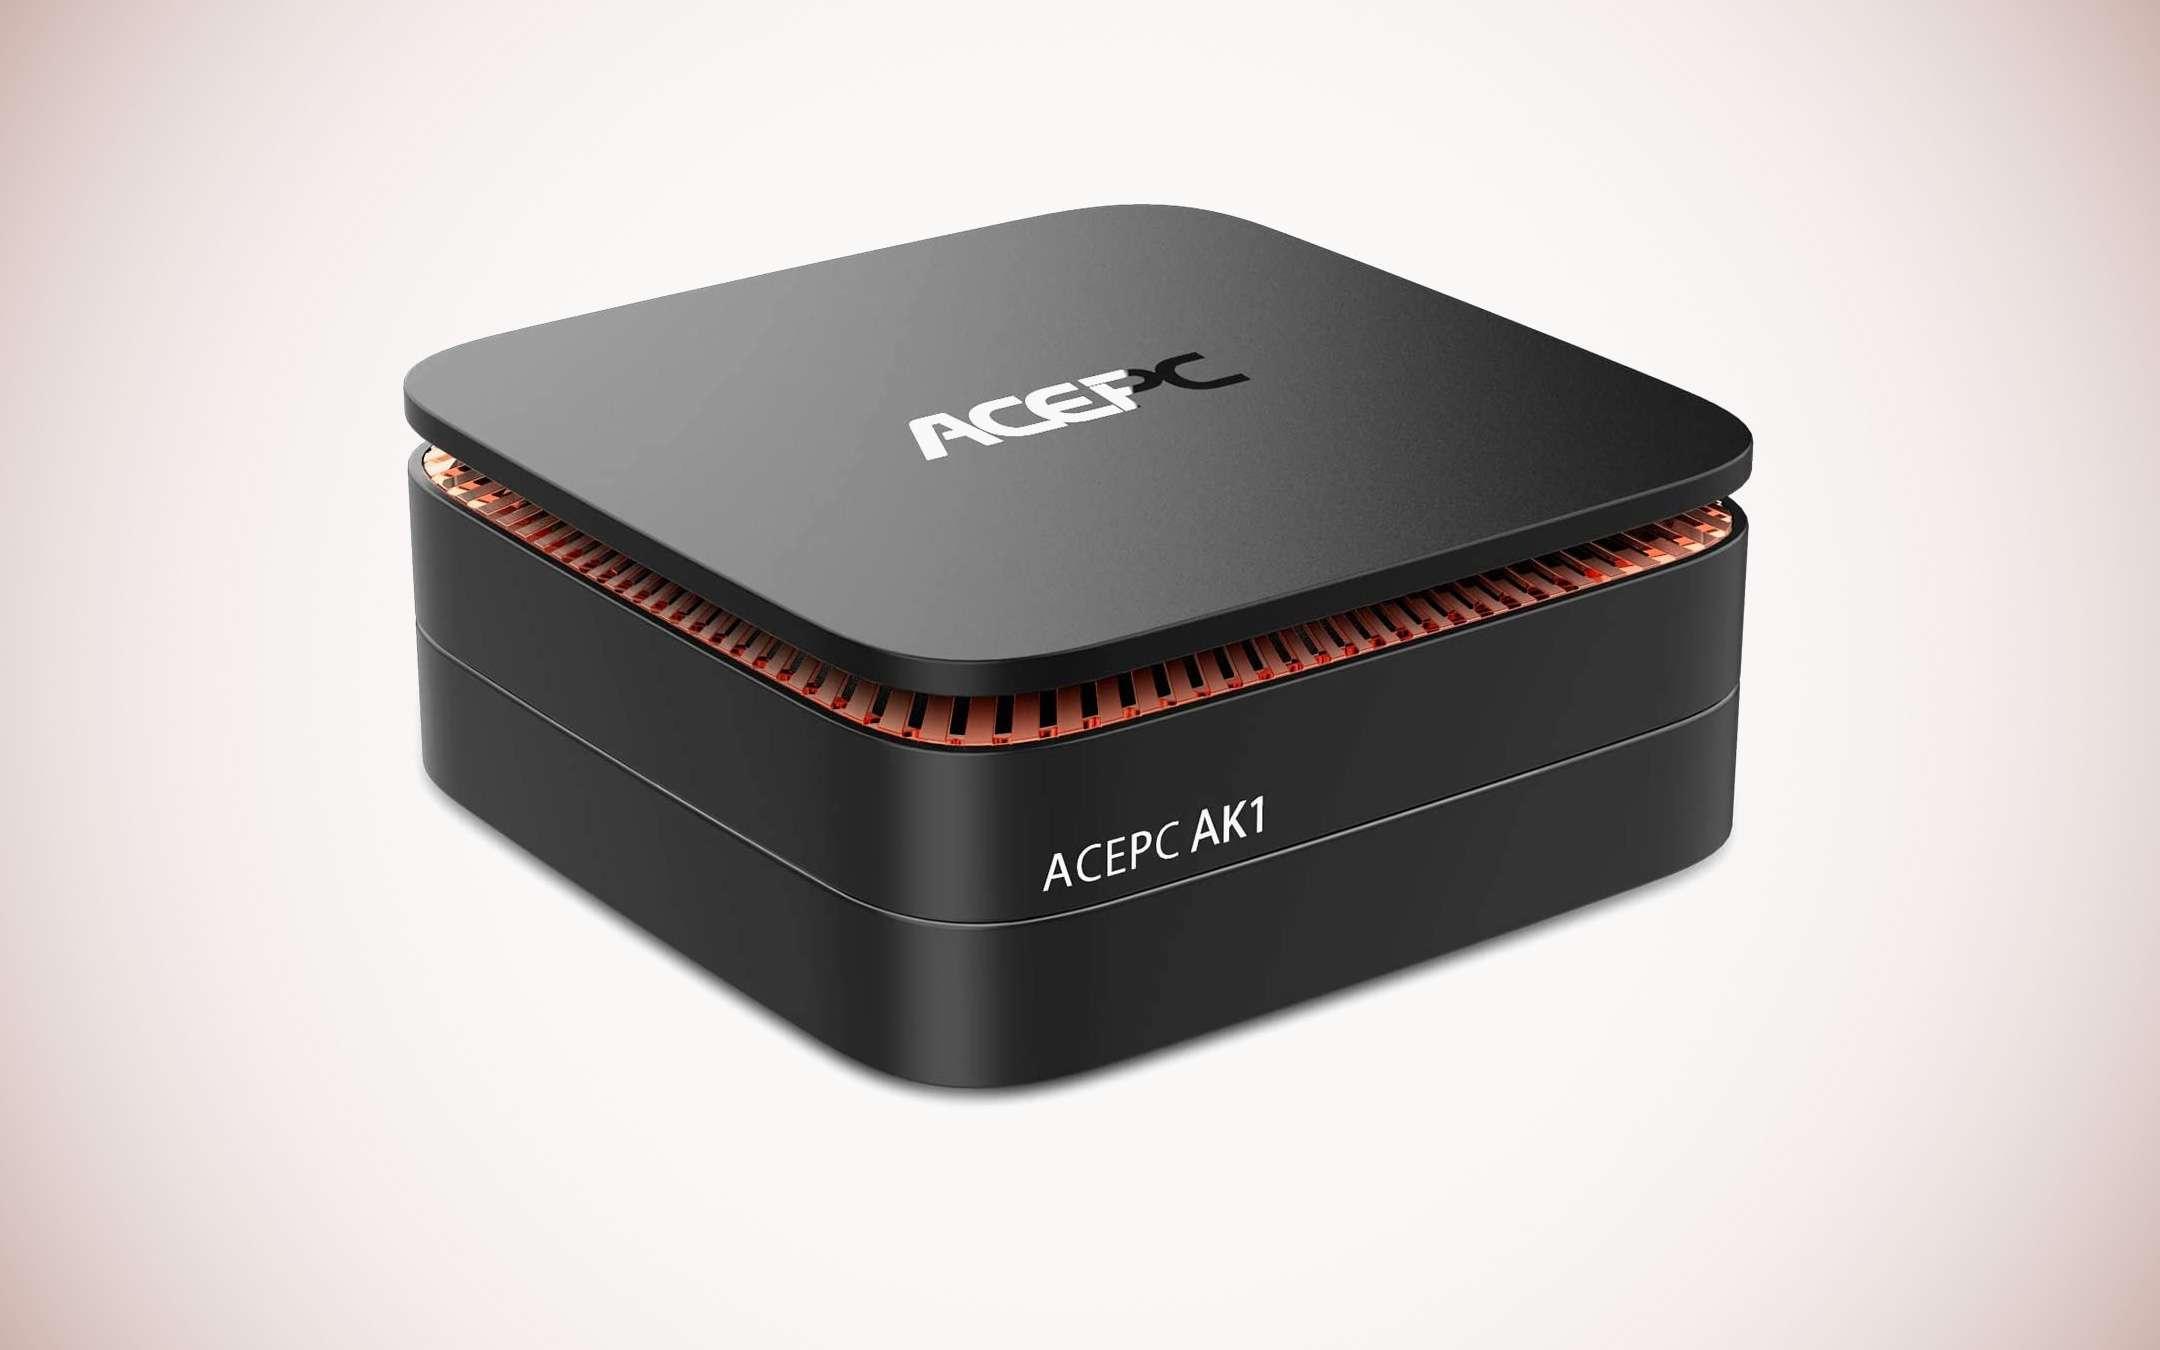 ACEPC AK1: Mini PC with Intel CPU and W10 Pro at -20%